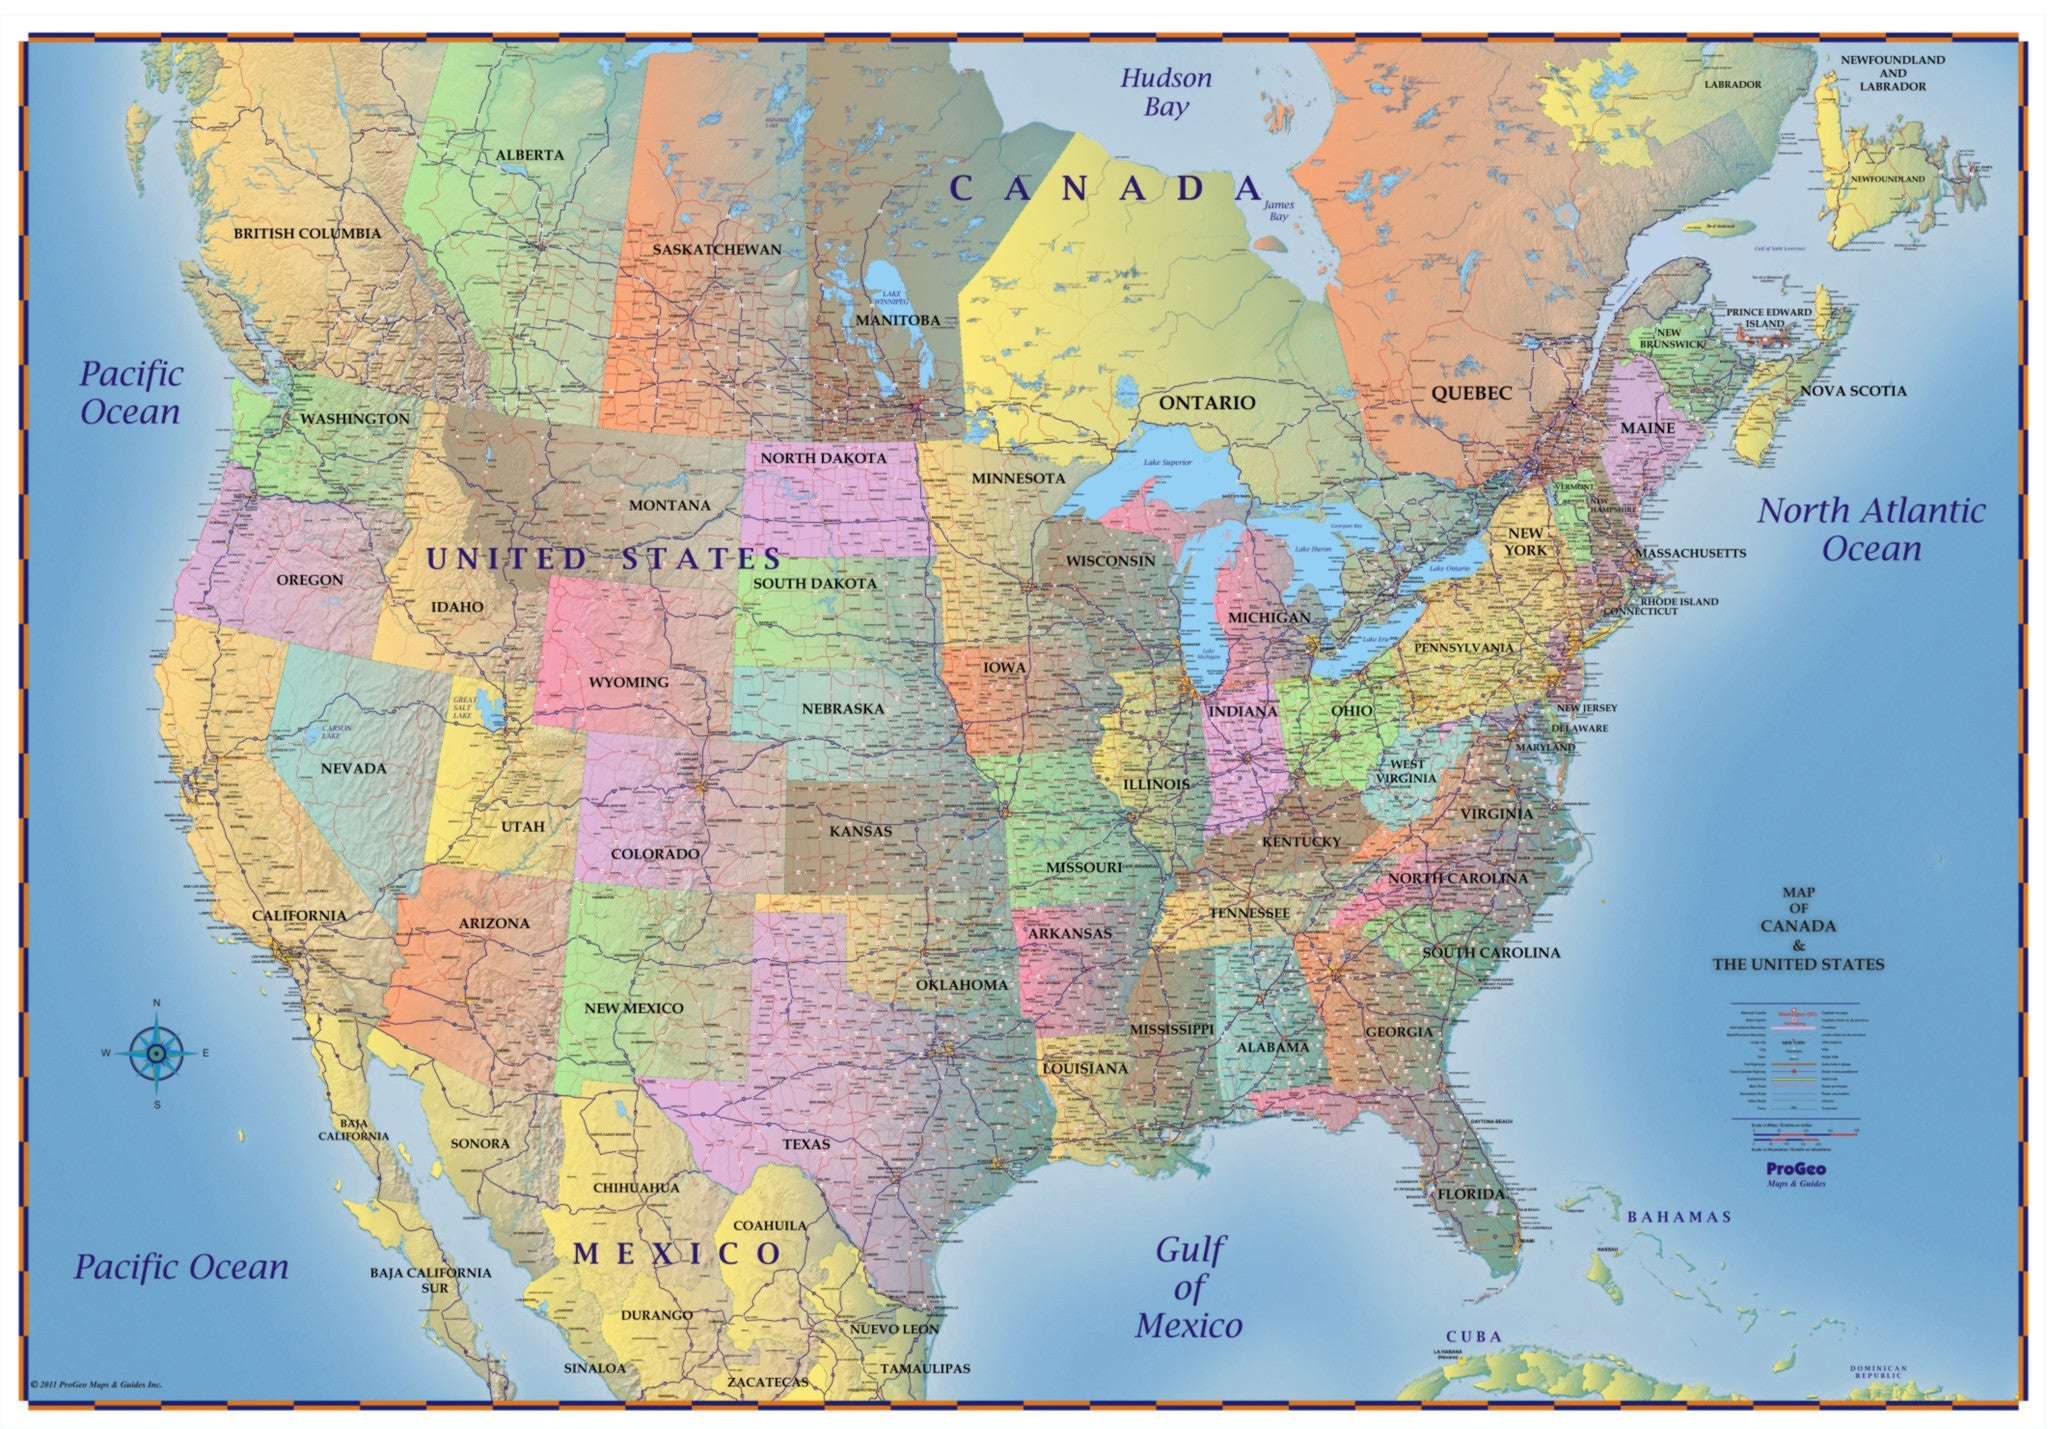 Truckers Wall Map Of Canada United States And Northern Mexico - Usa states list and map